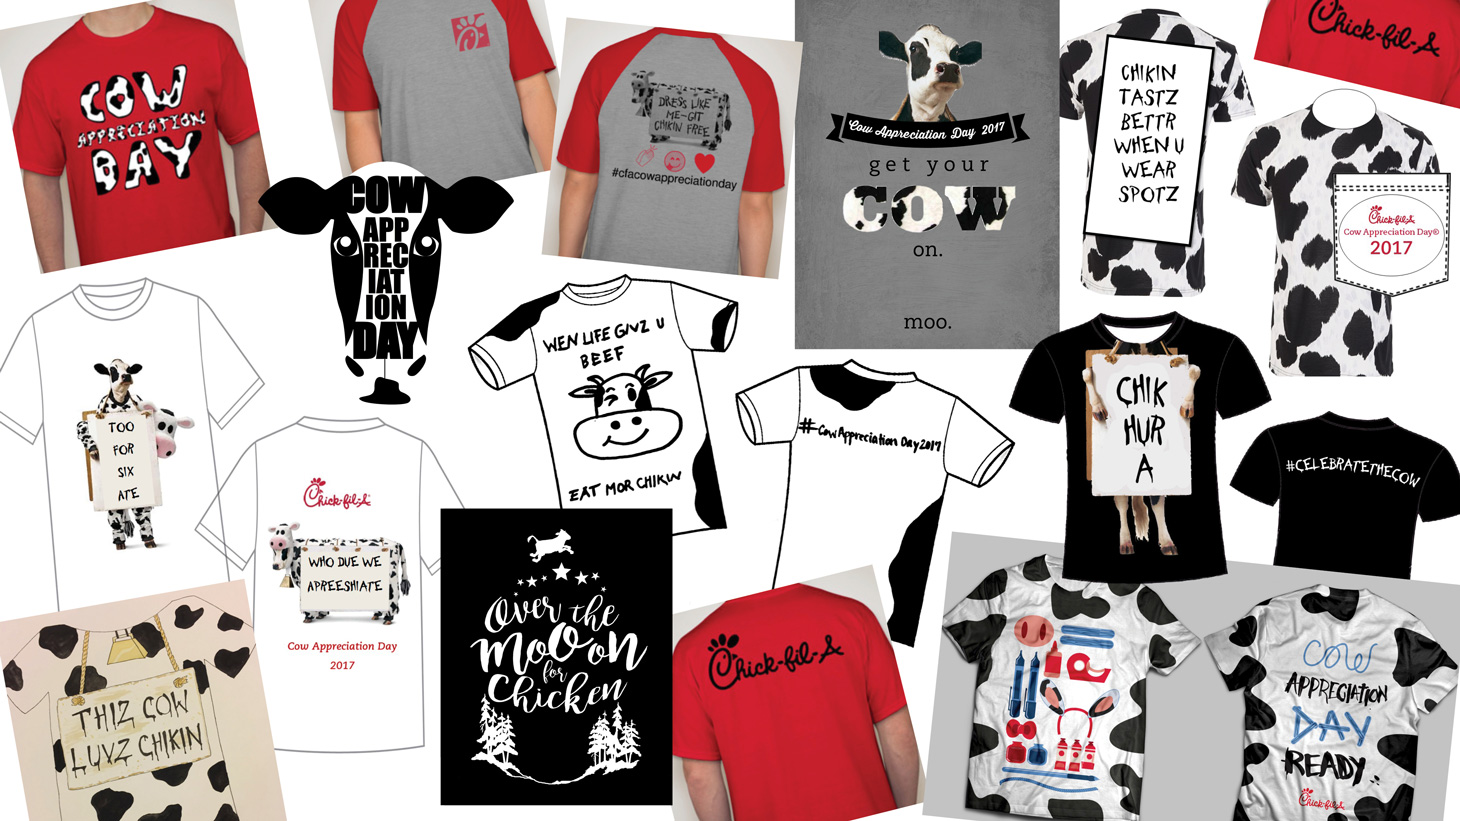 photograph about Chick Fil a Cow Printable Costume named Cost-free entrees for cow-dressed purchasers Chick-fil-A